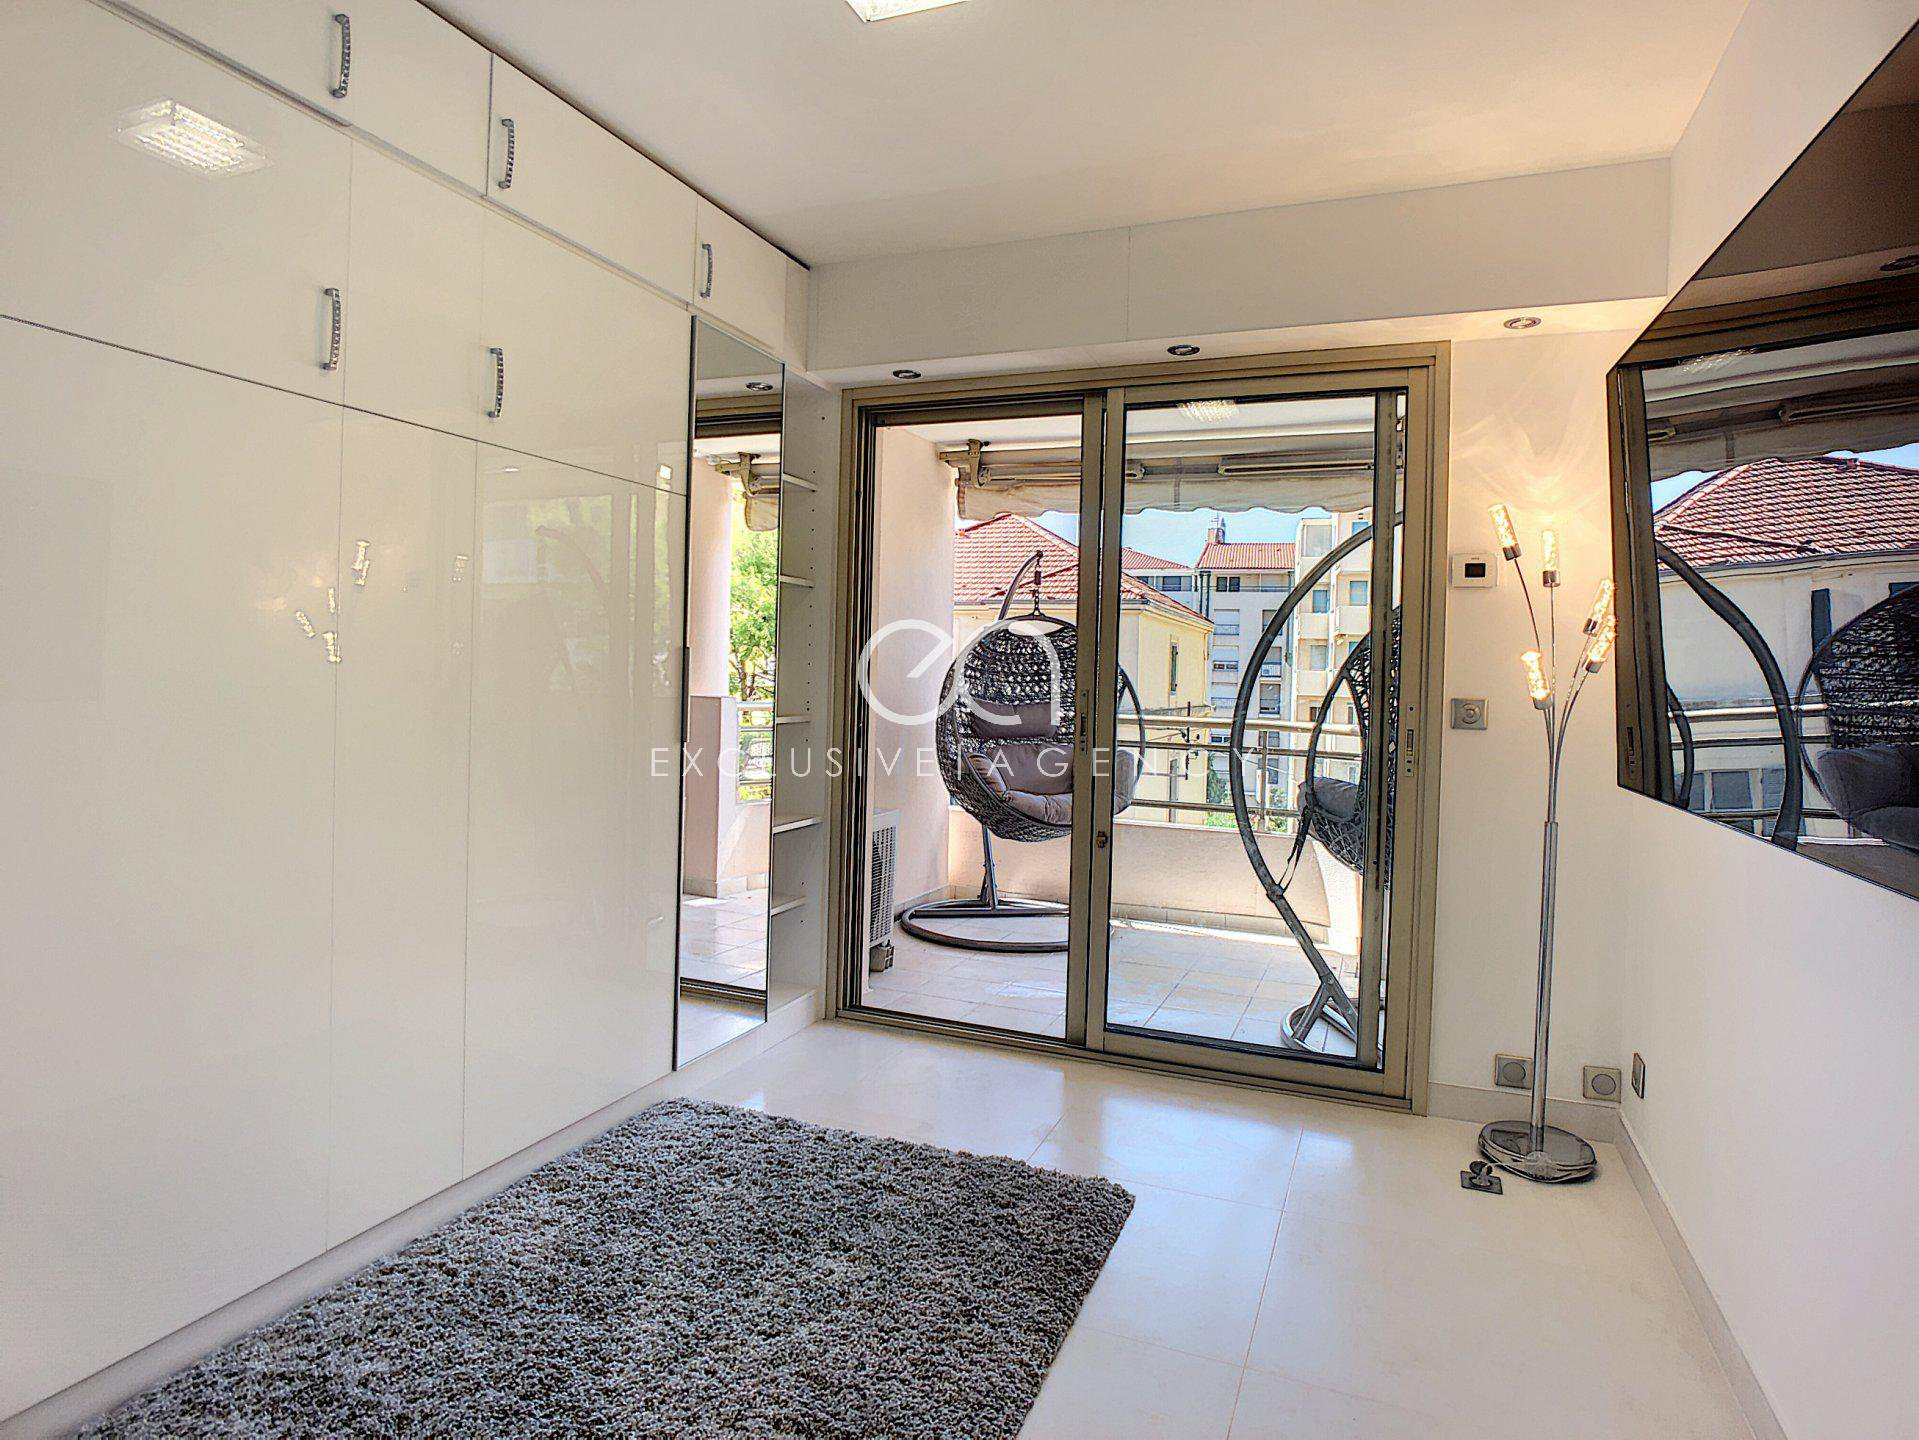 Cannes near downtown 2 rooms 50m2 with terrace 20sqm for 1 to 2 people.